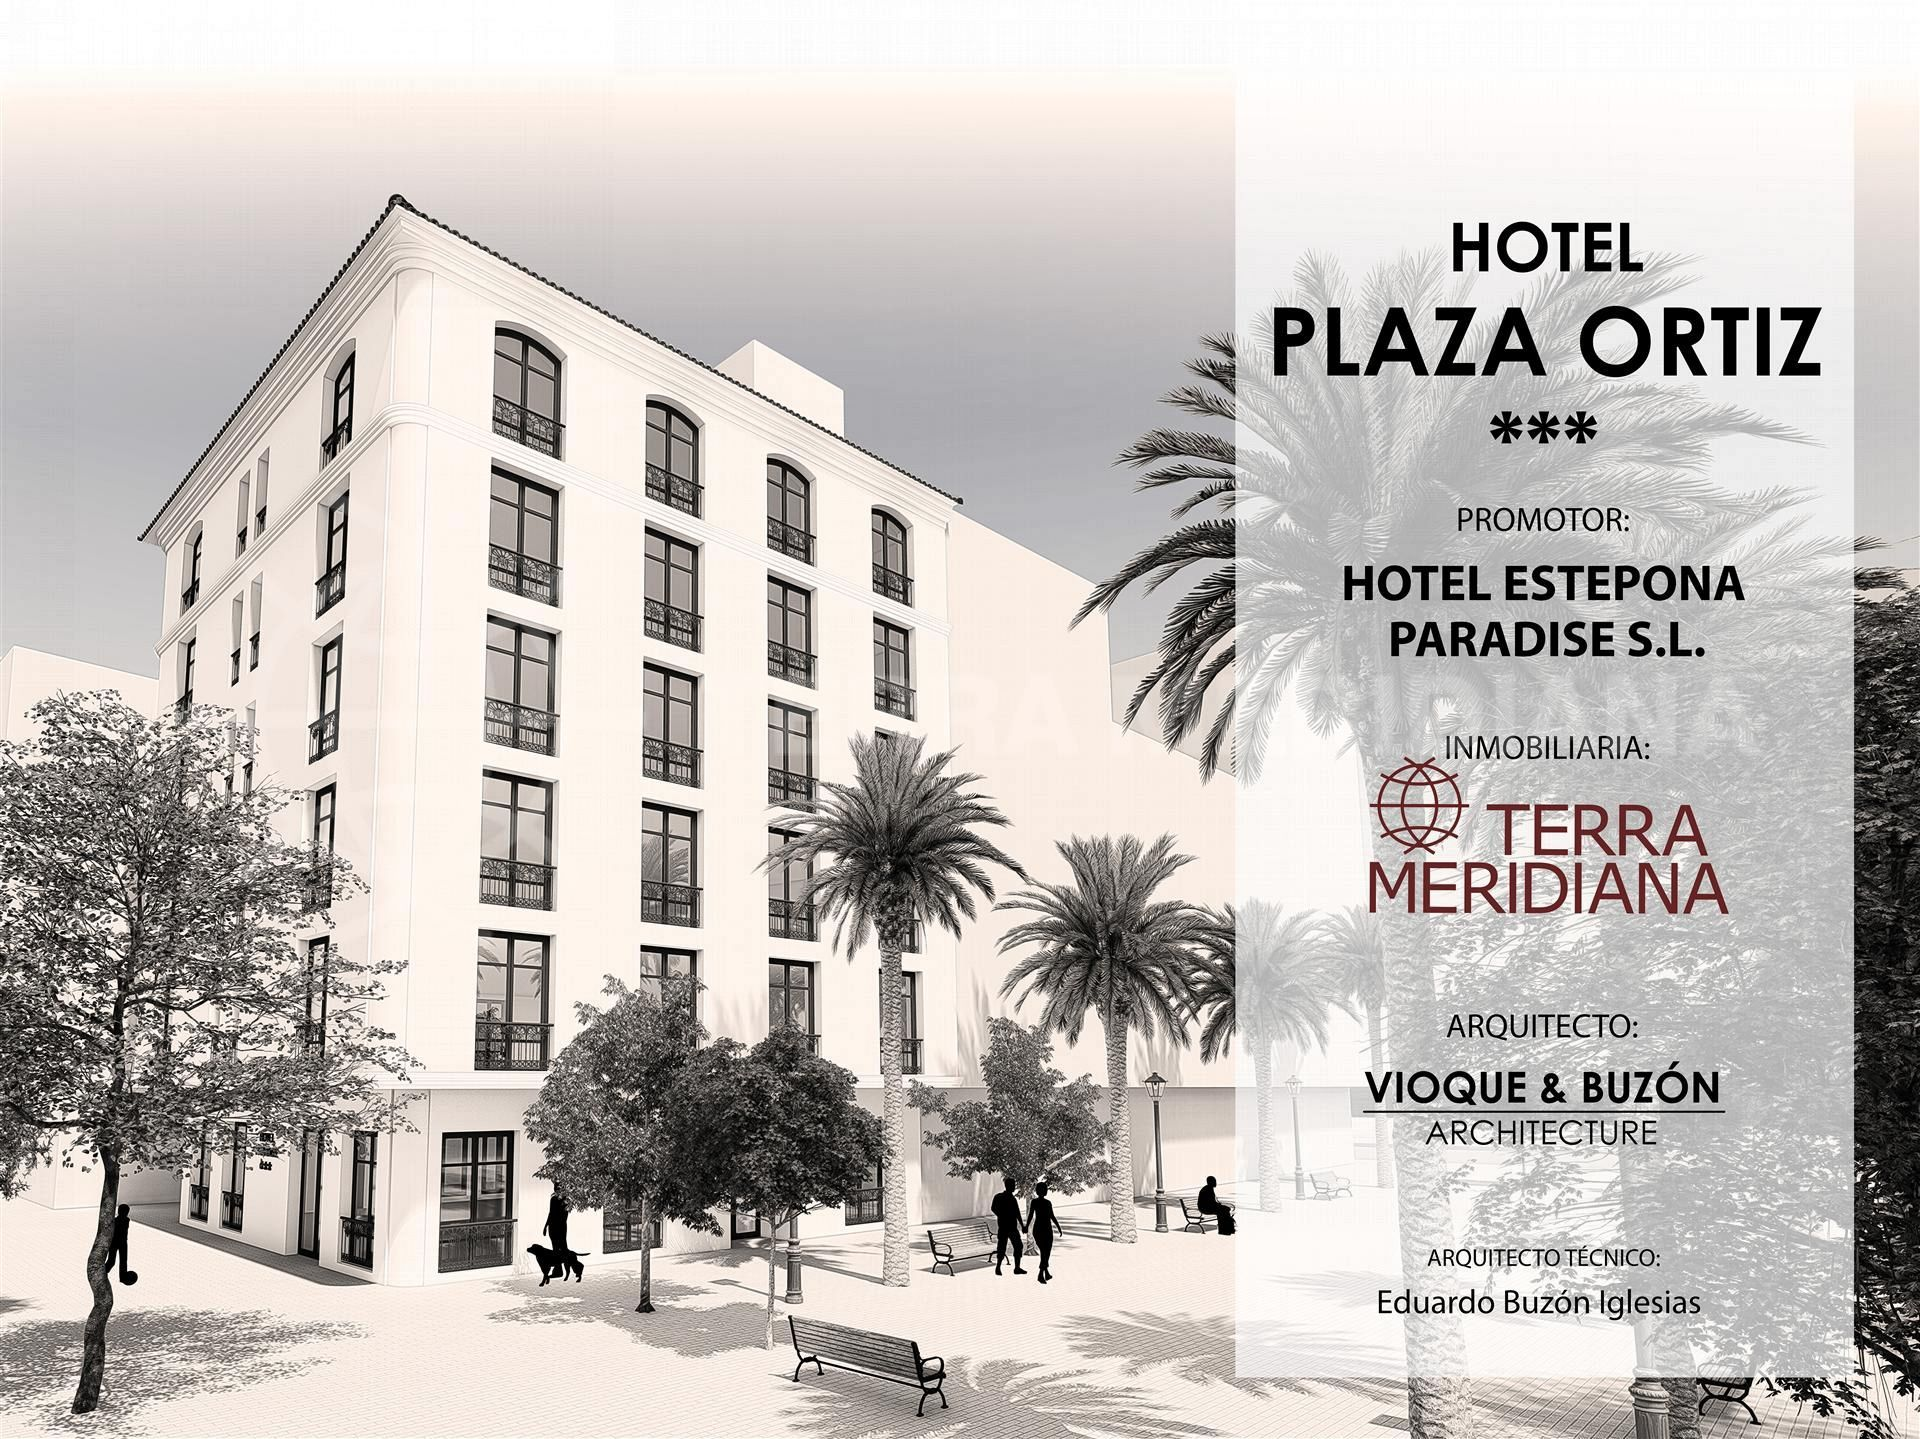 Terra Meridiana assists in development of two exciting new hotel projects in Estepona centre